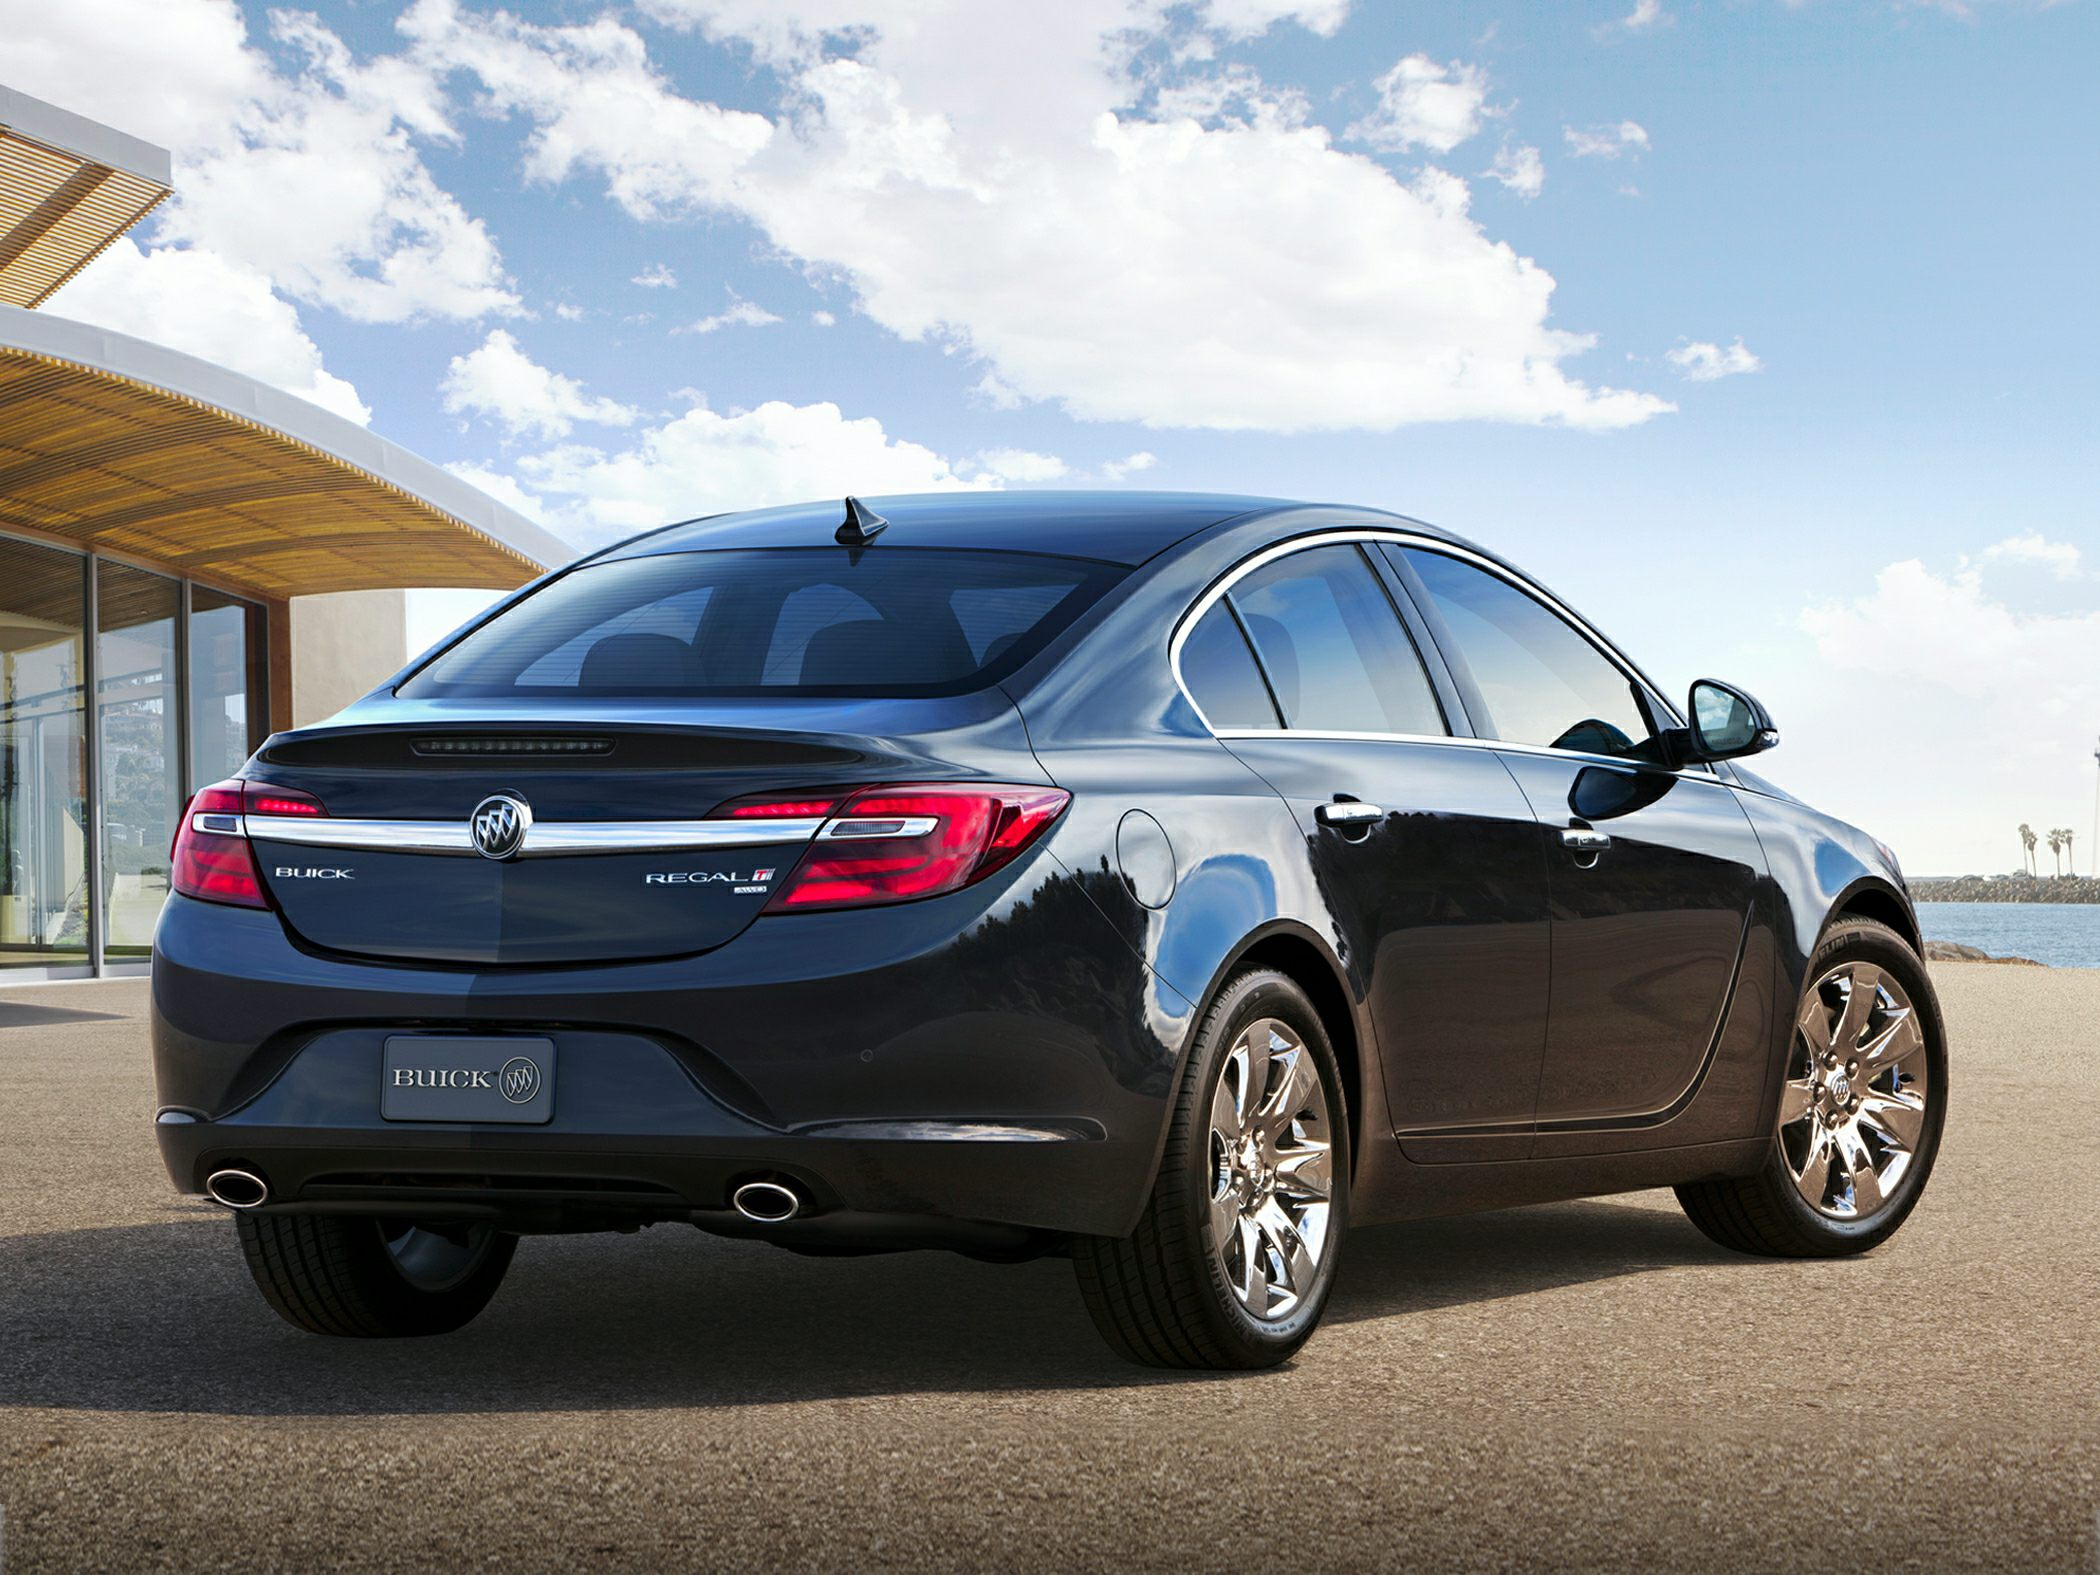 2015 Buick Regal #13